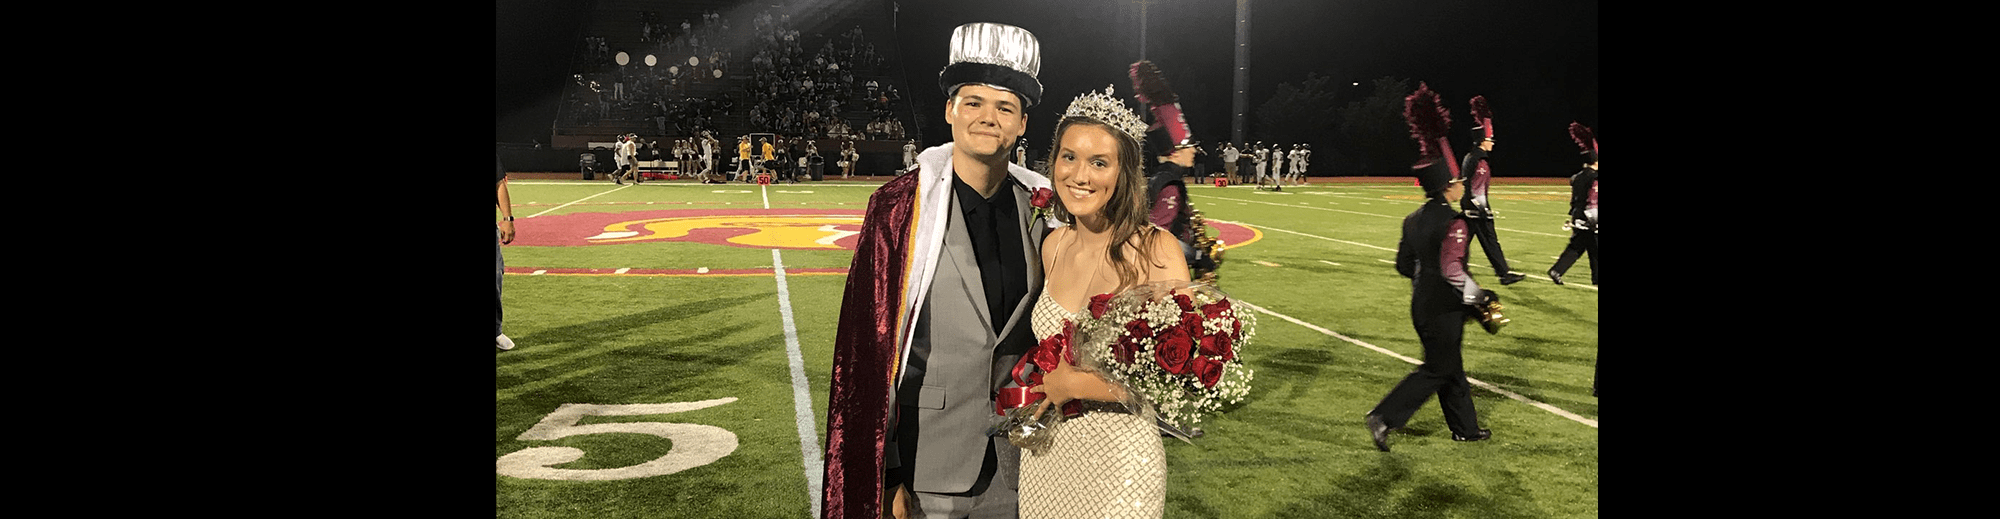 Homecoming king and queen pose together on the football field